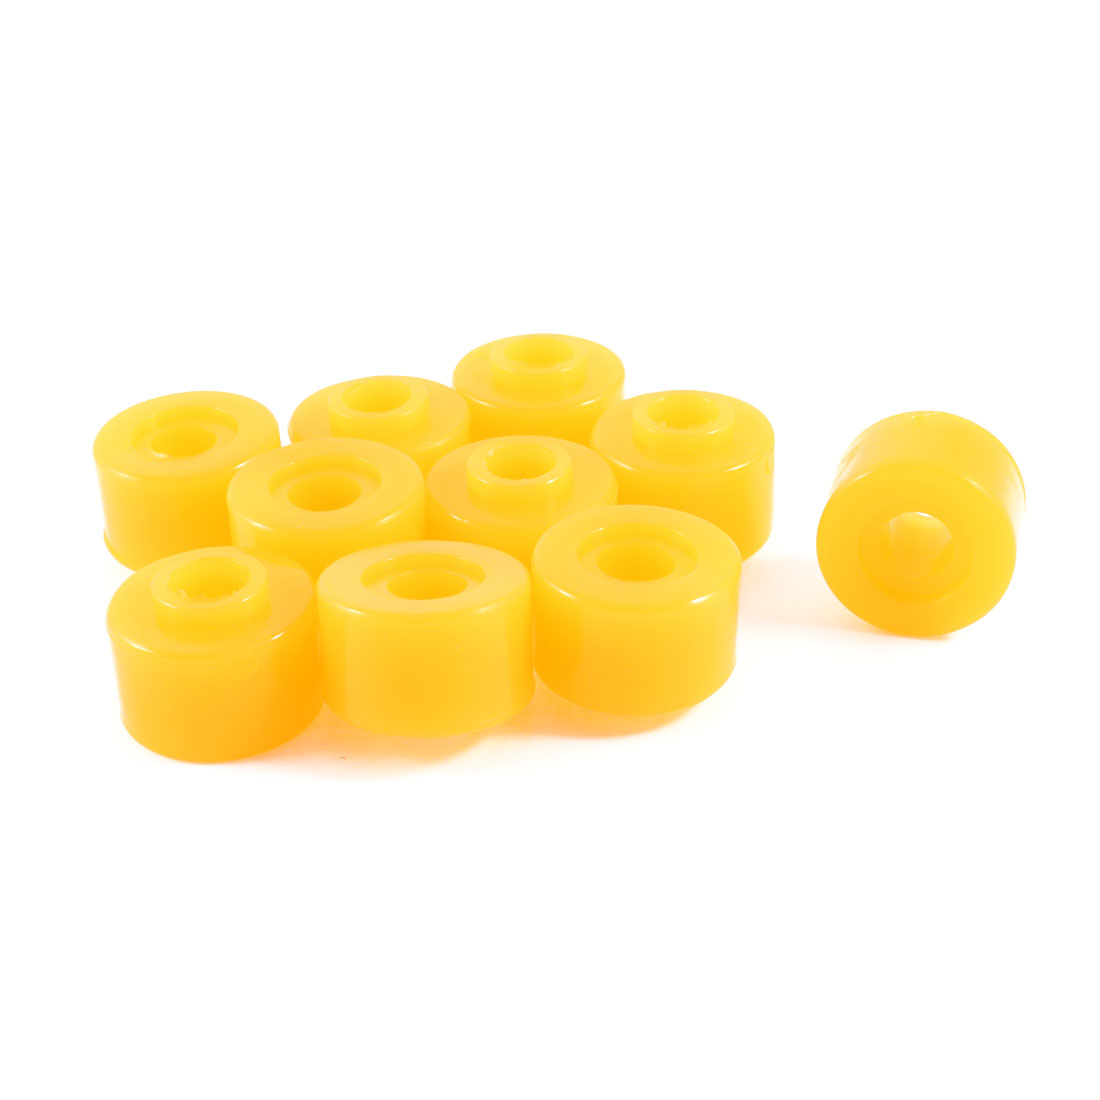 "Vehicles Autos 0.8"" Thick Yellow Rubber Shock Absorber Bushings Part 10 Pcs"